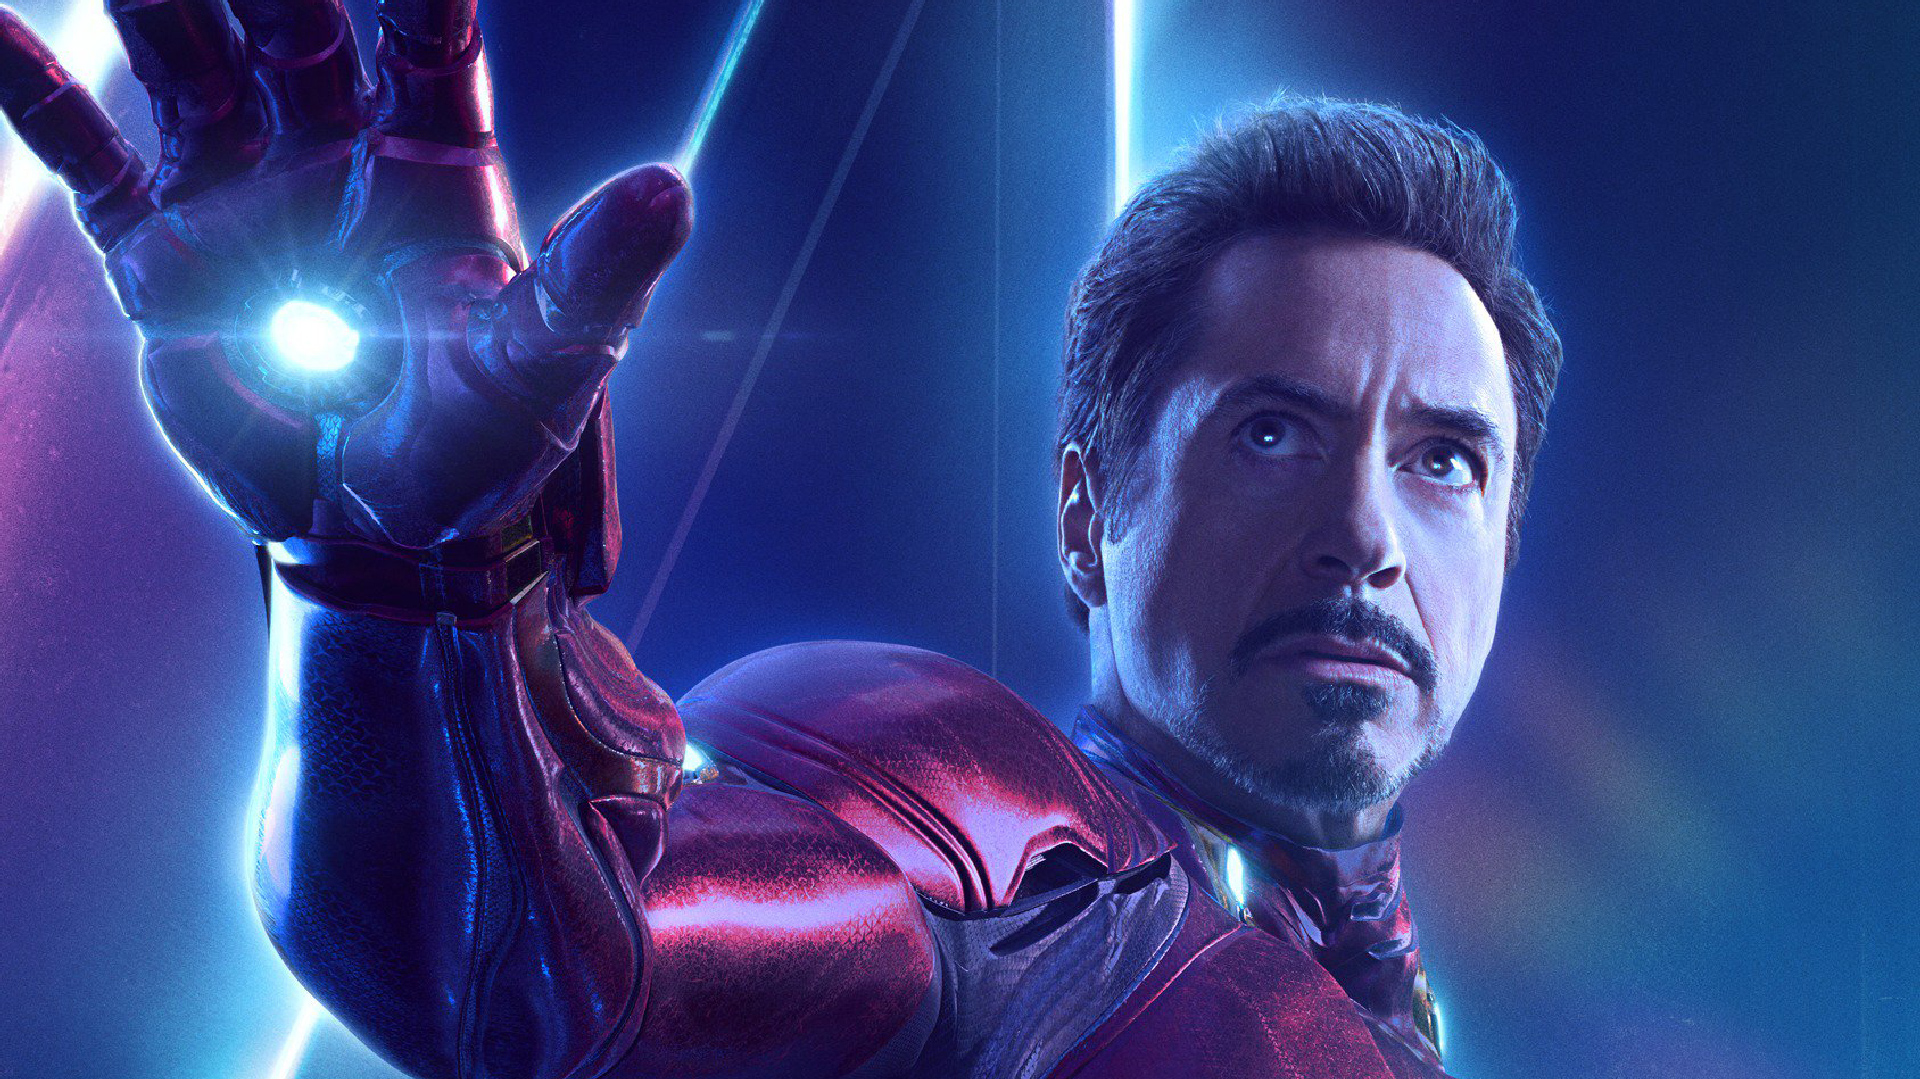 1280x1024 Iron Man In Avengers Infinity War New Poster